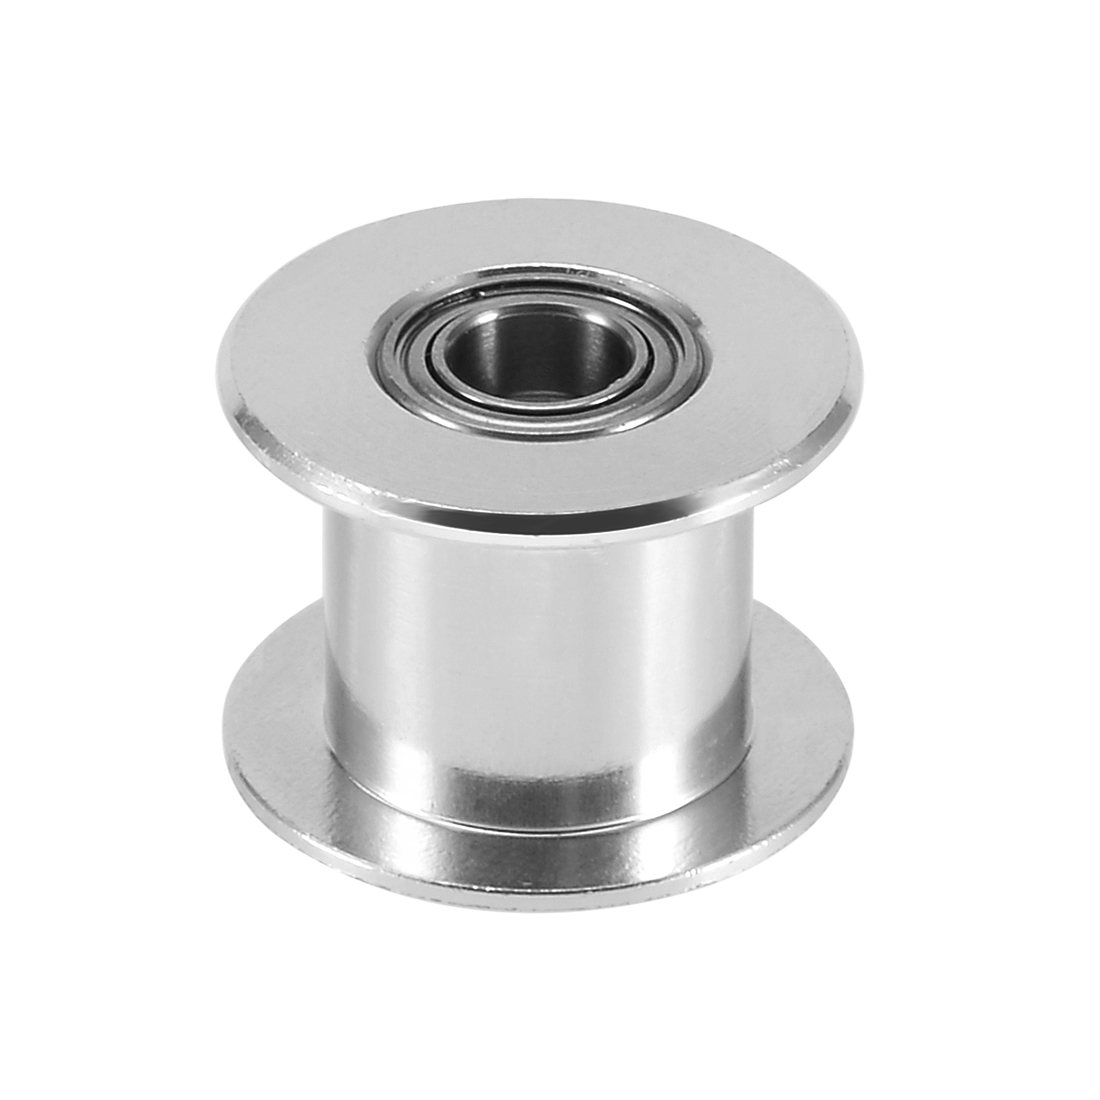 Aluminum GT2 5mm Bore Toothless Timing Belt Idler Pulley Flange with Ball Bearings for 3D Printer